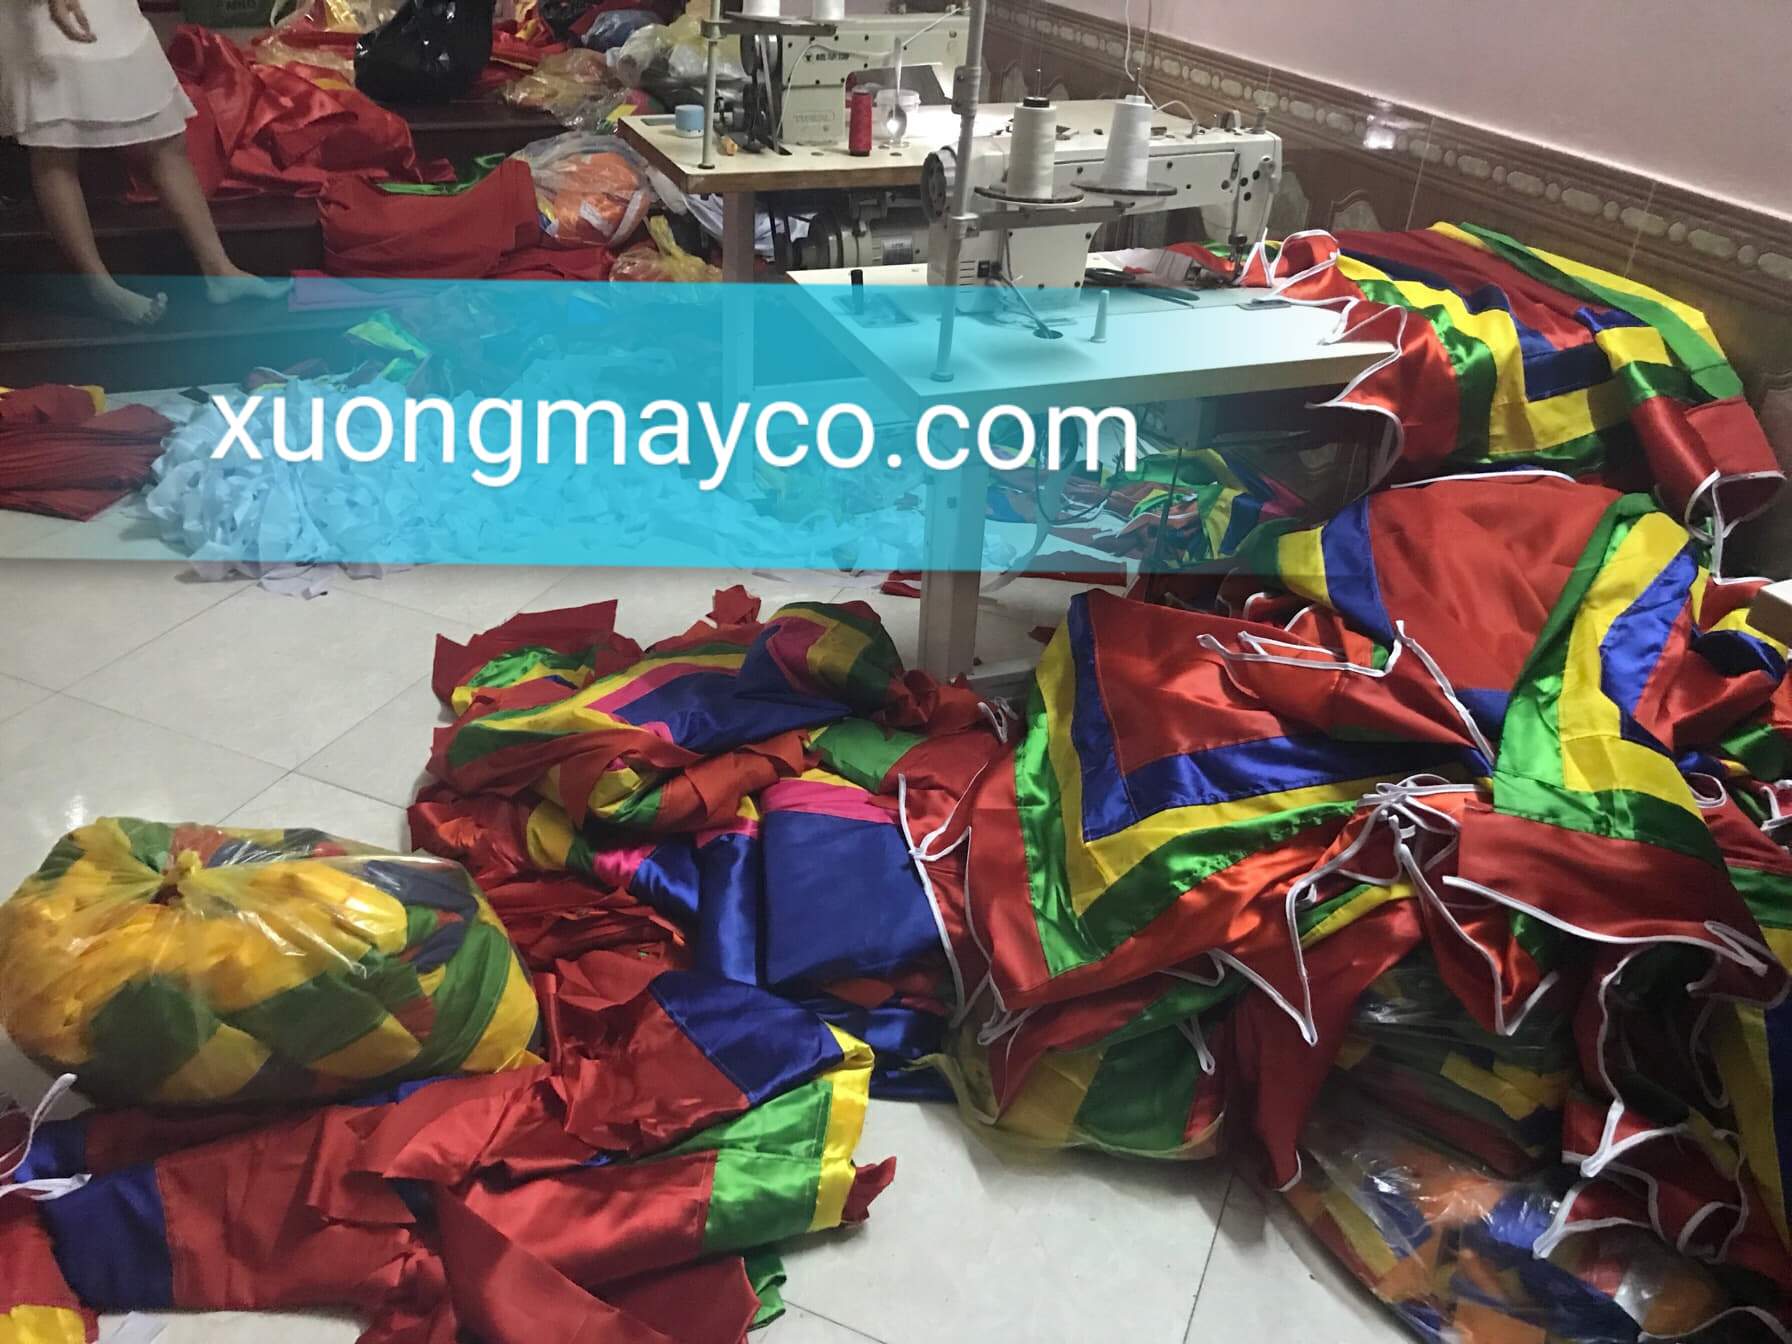 xuong-may-co-ngu-sac-8